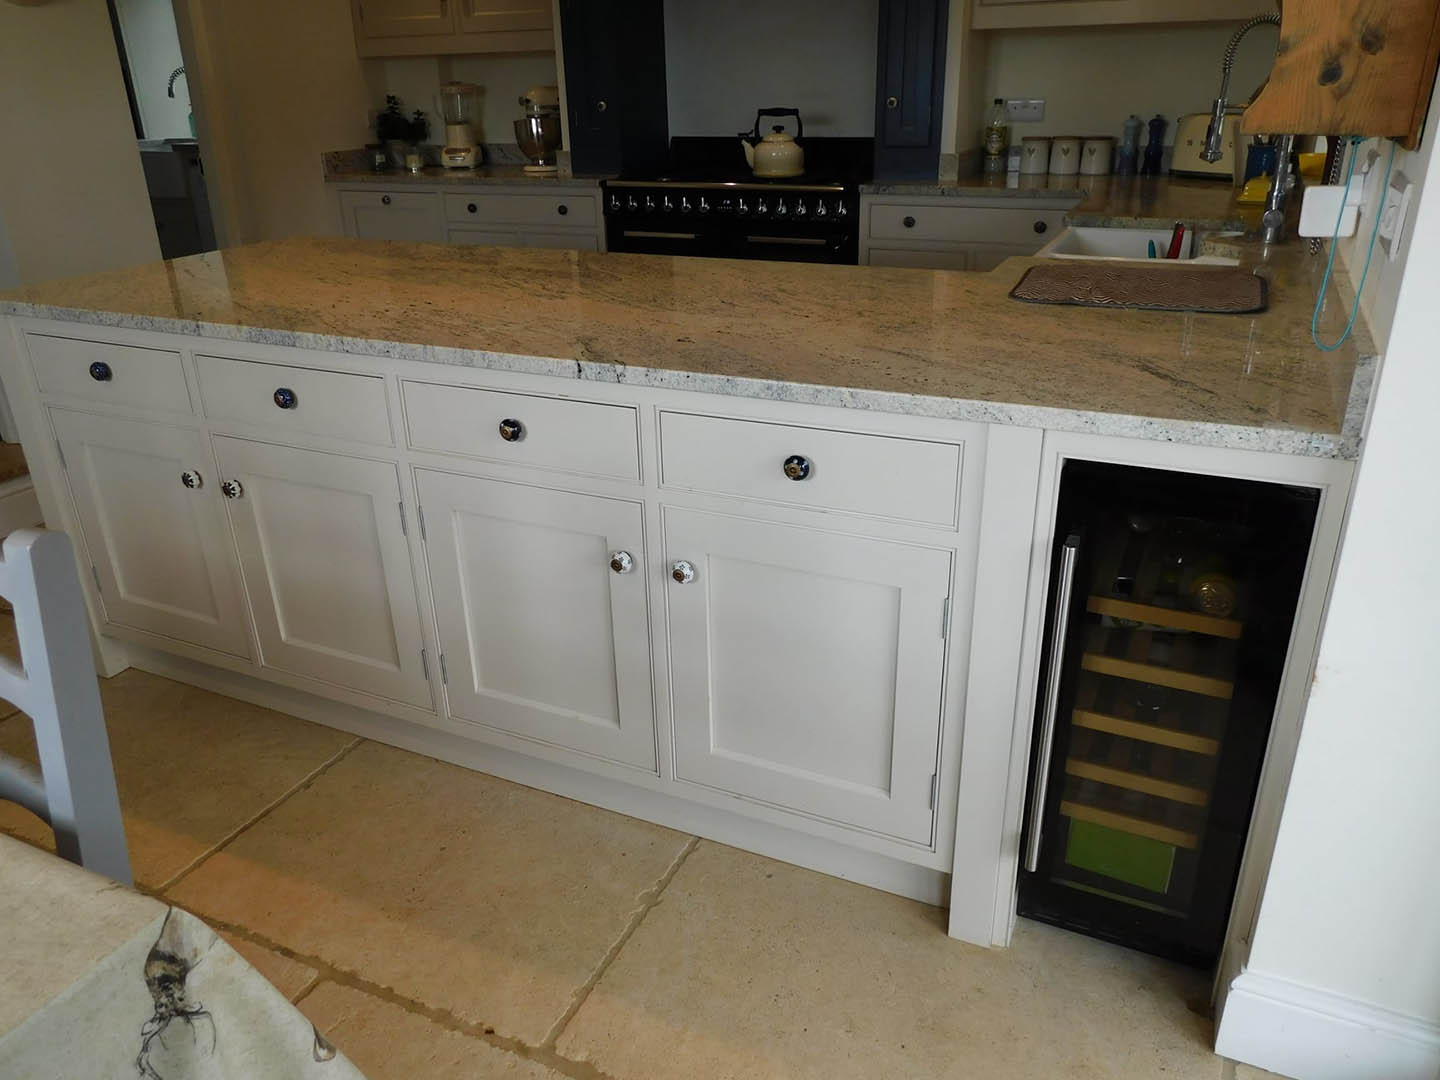 Some kitchen cupboards with a slide-out rack.